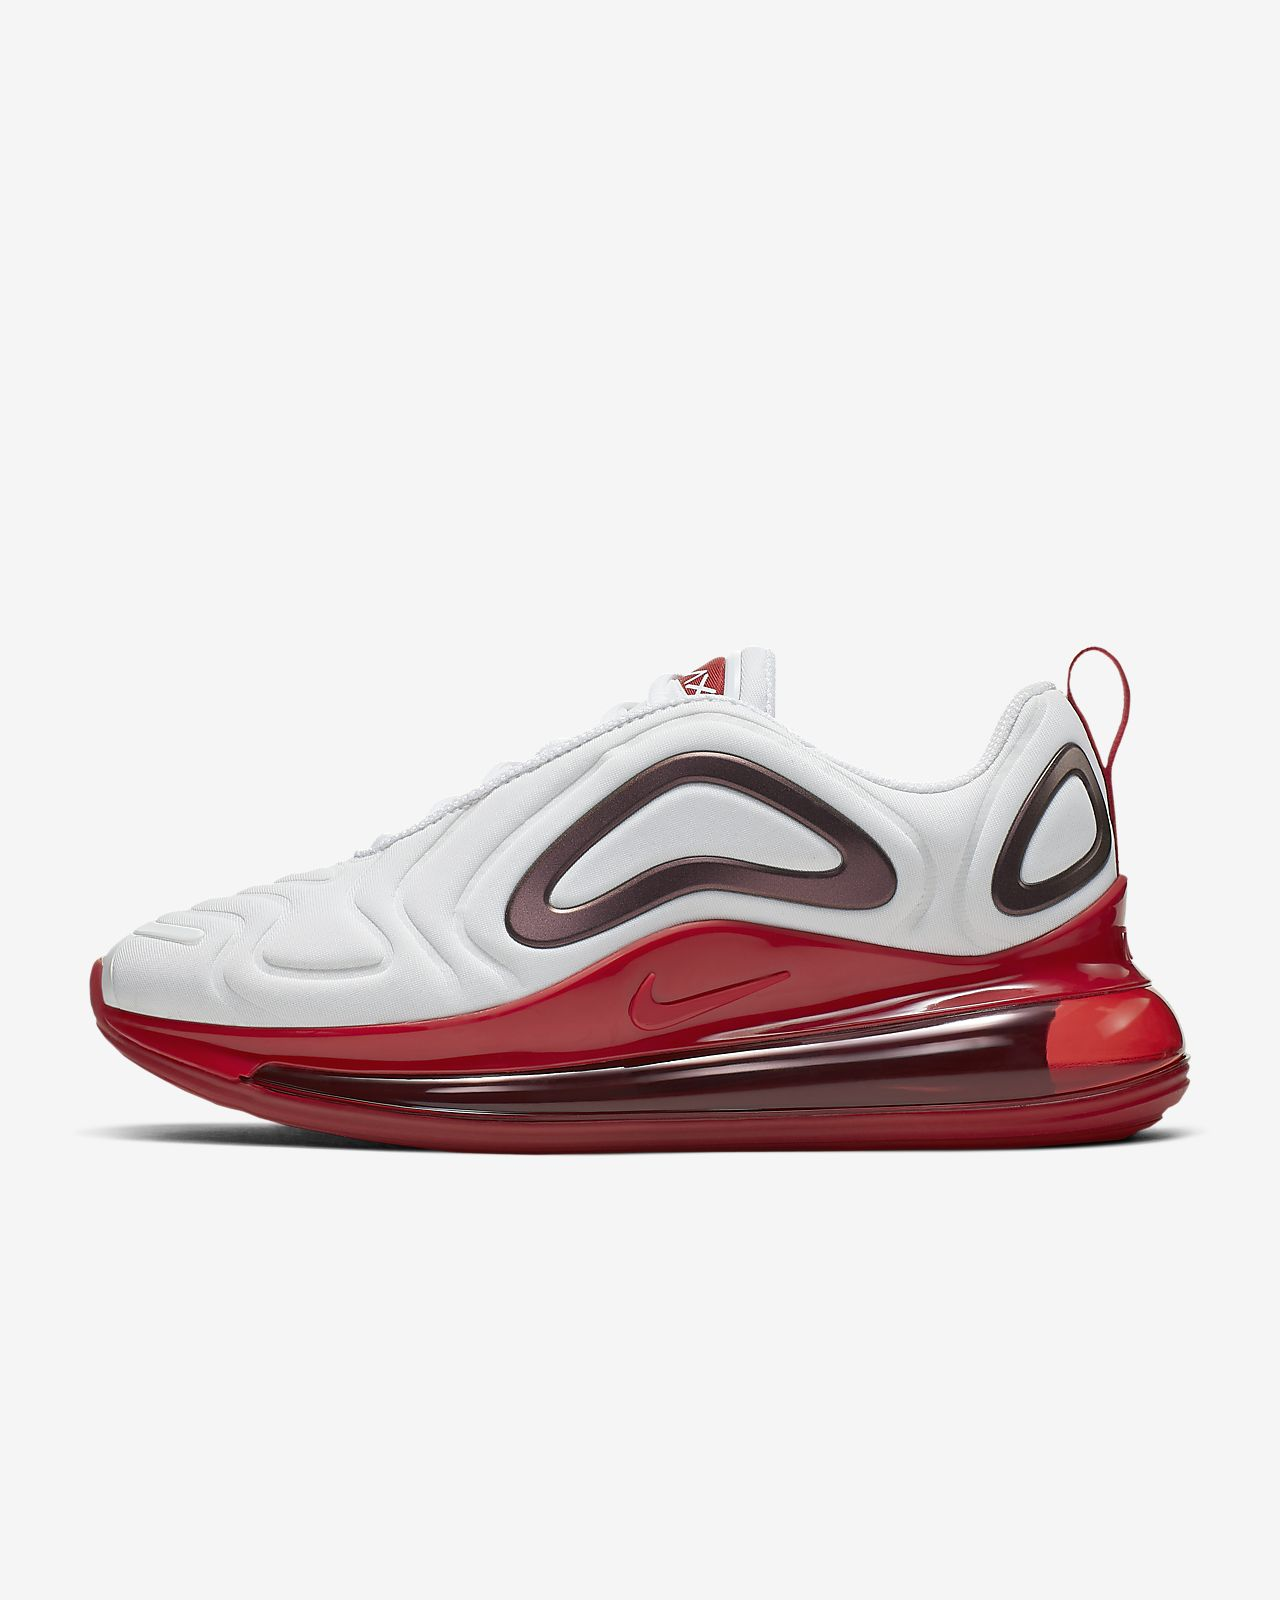 8c8e584265df Nike Air Max 720 SE Women s Shoe. Nike.com GB